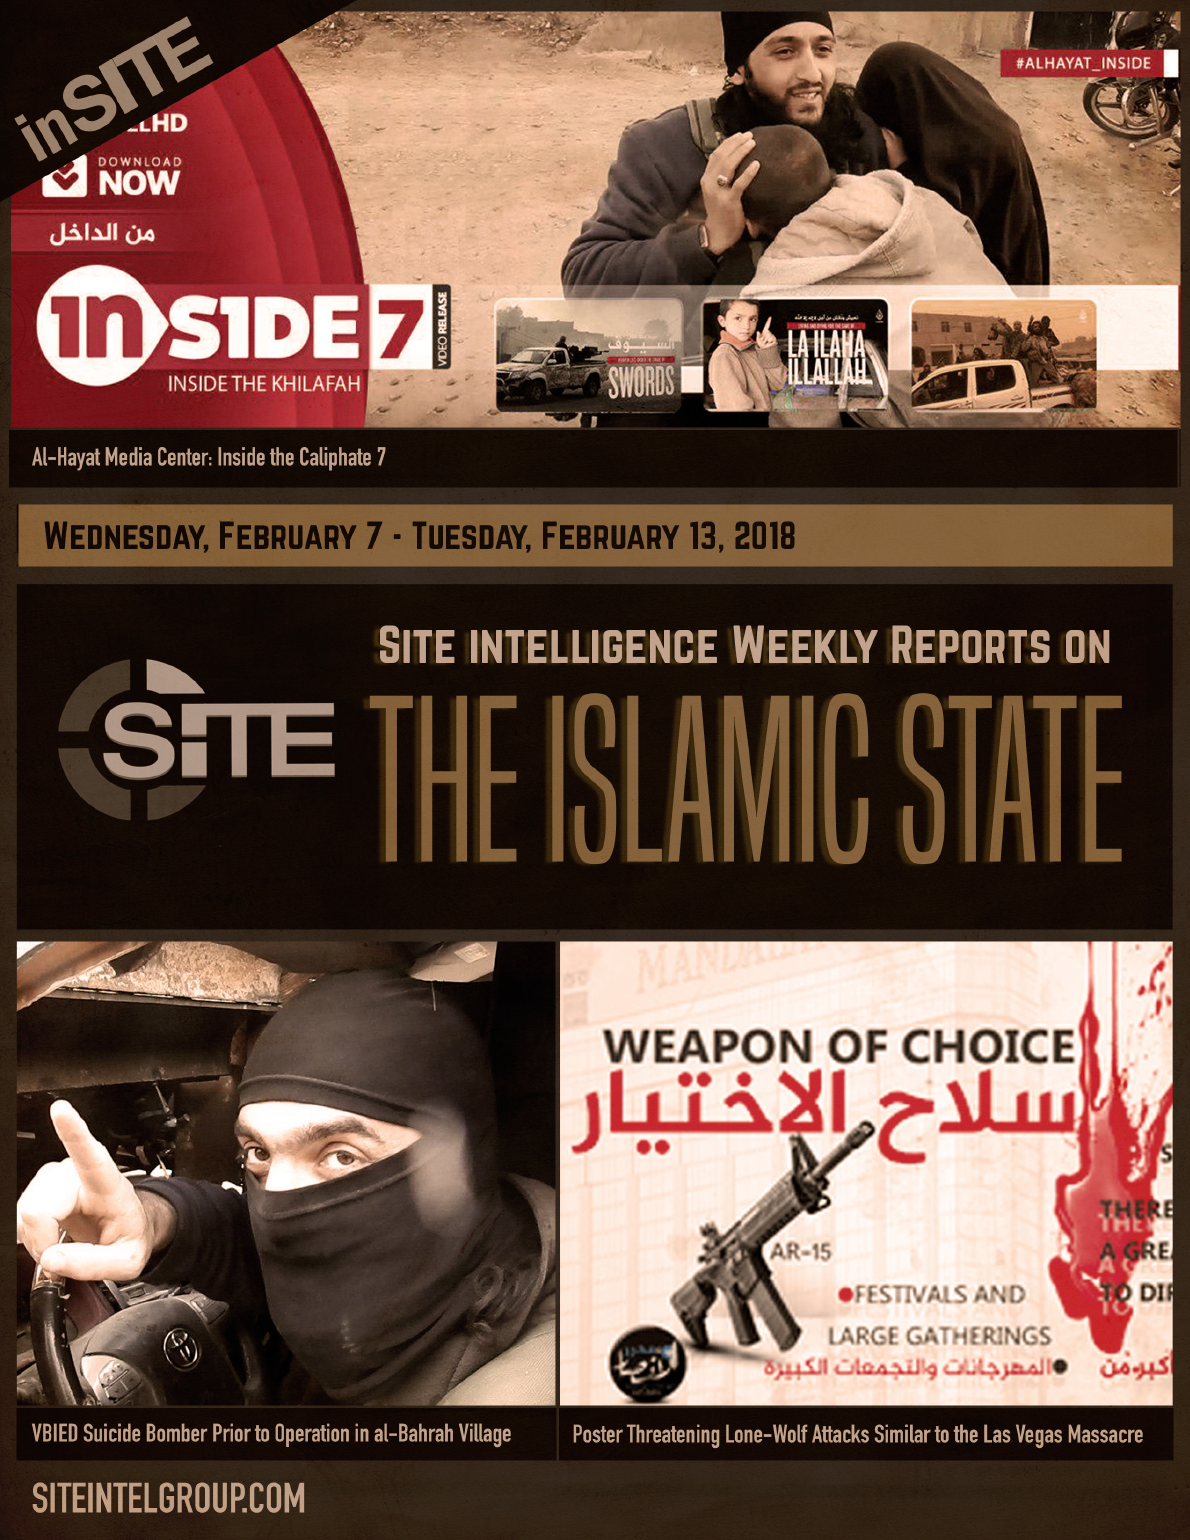 Weekly inSITE on the Islamic State, February 7-13, 2018